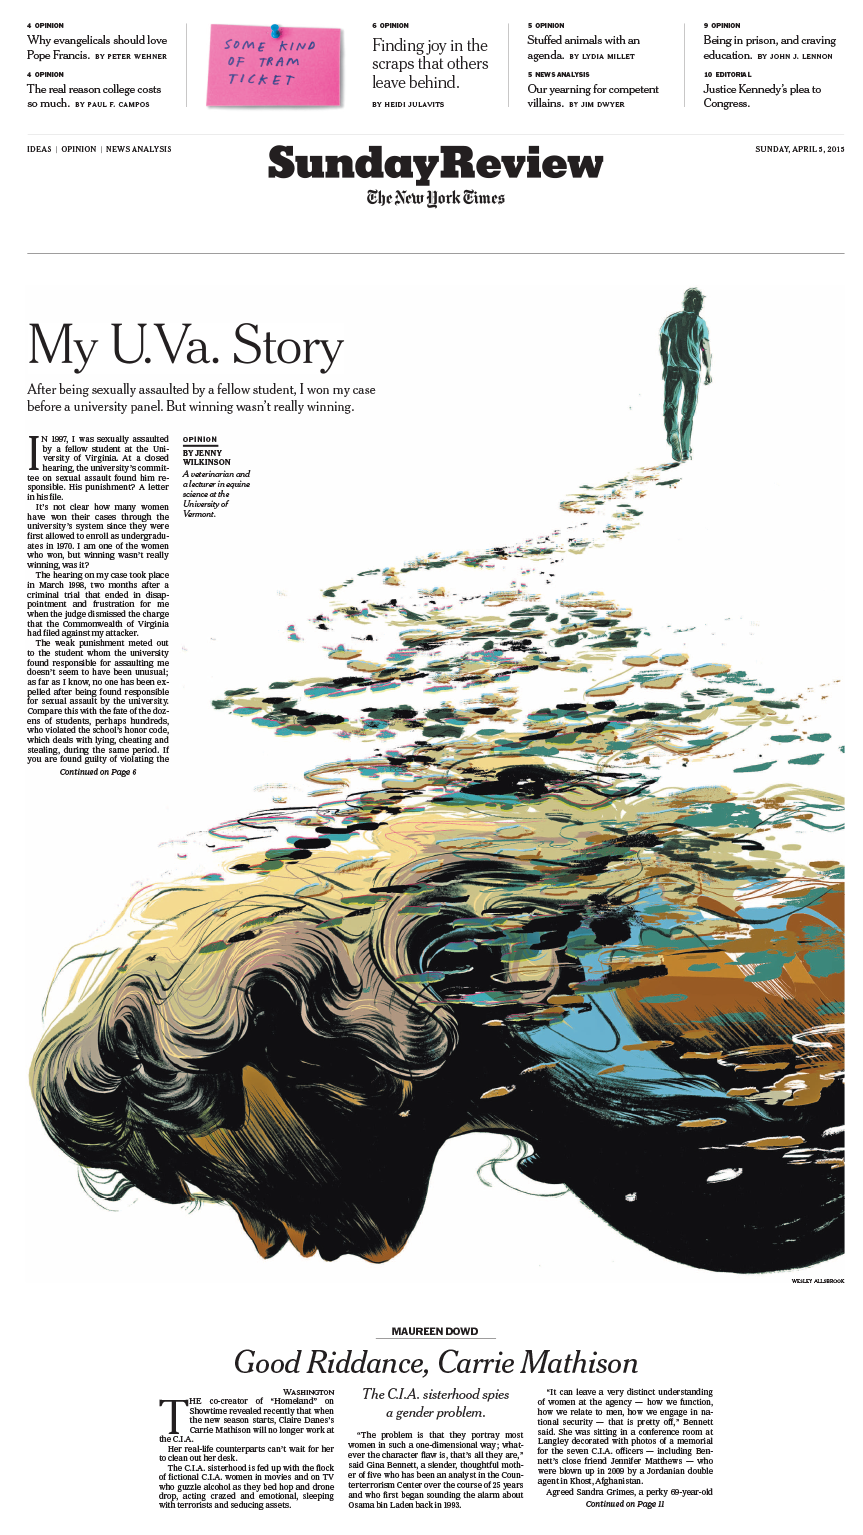 Sunday Review Cover: My U.Va. Story